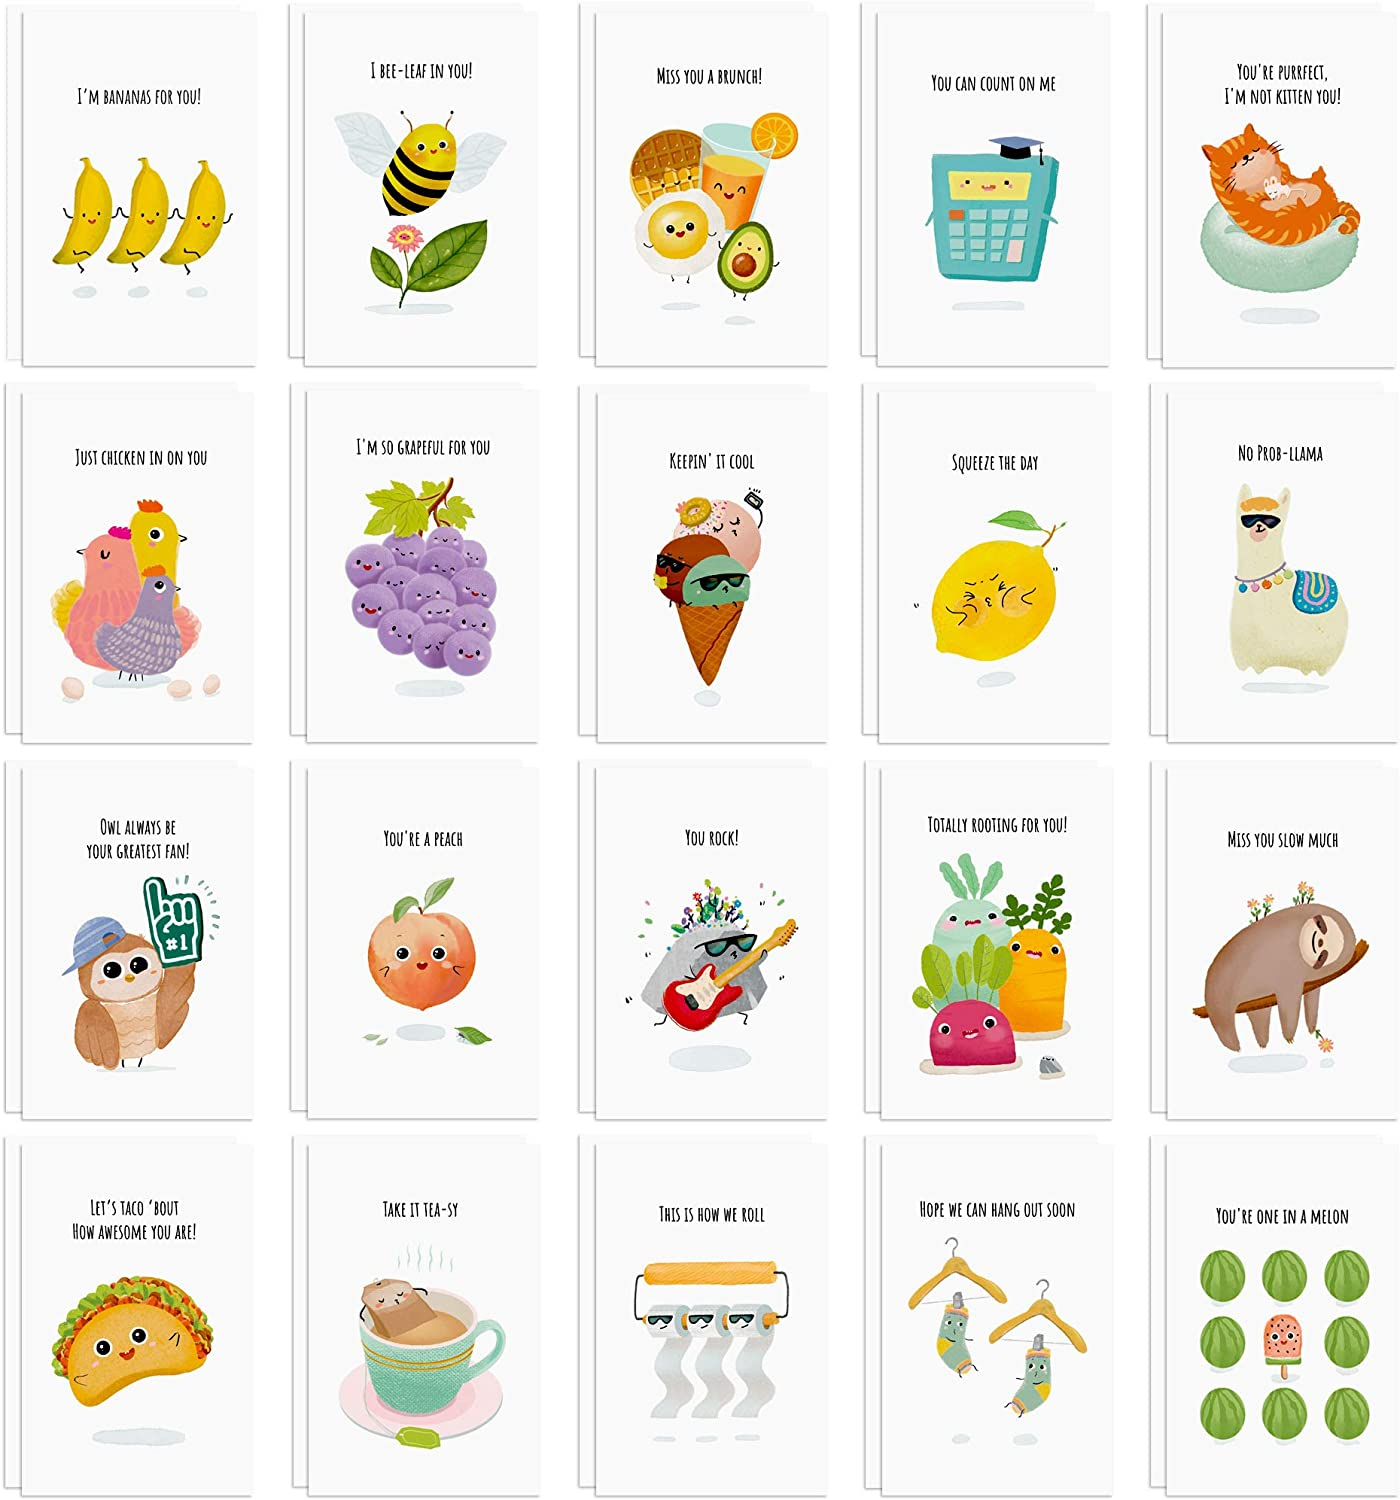 40 Funny Postcards Punny Puns - Bulk Thinking of You Postcard Pack for Friends, Family, Kids, Students, Teacher, and More - Say Hello, Thank You or I Miss You with Hilarious Animals and Food Cartoon Note Cards